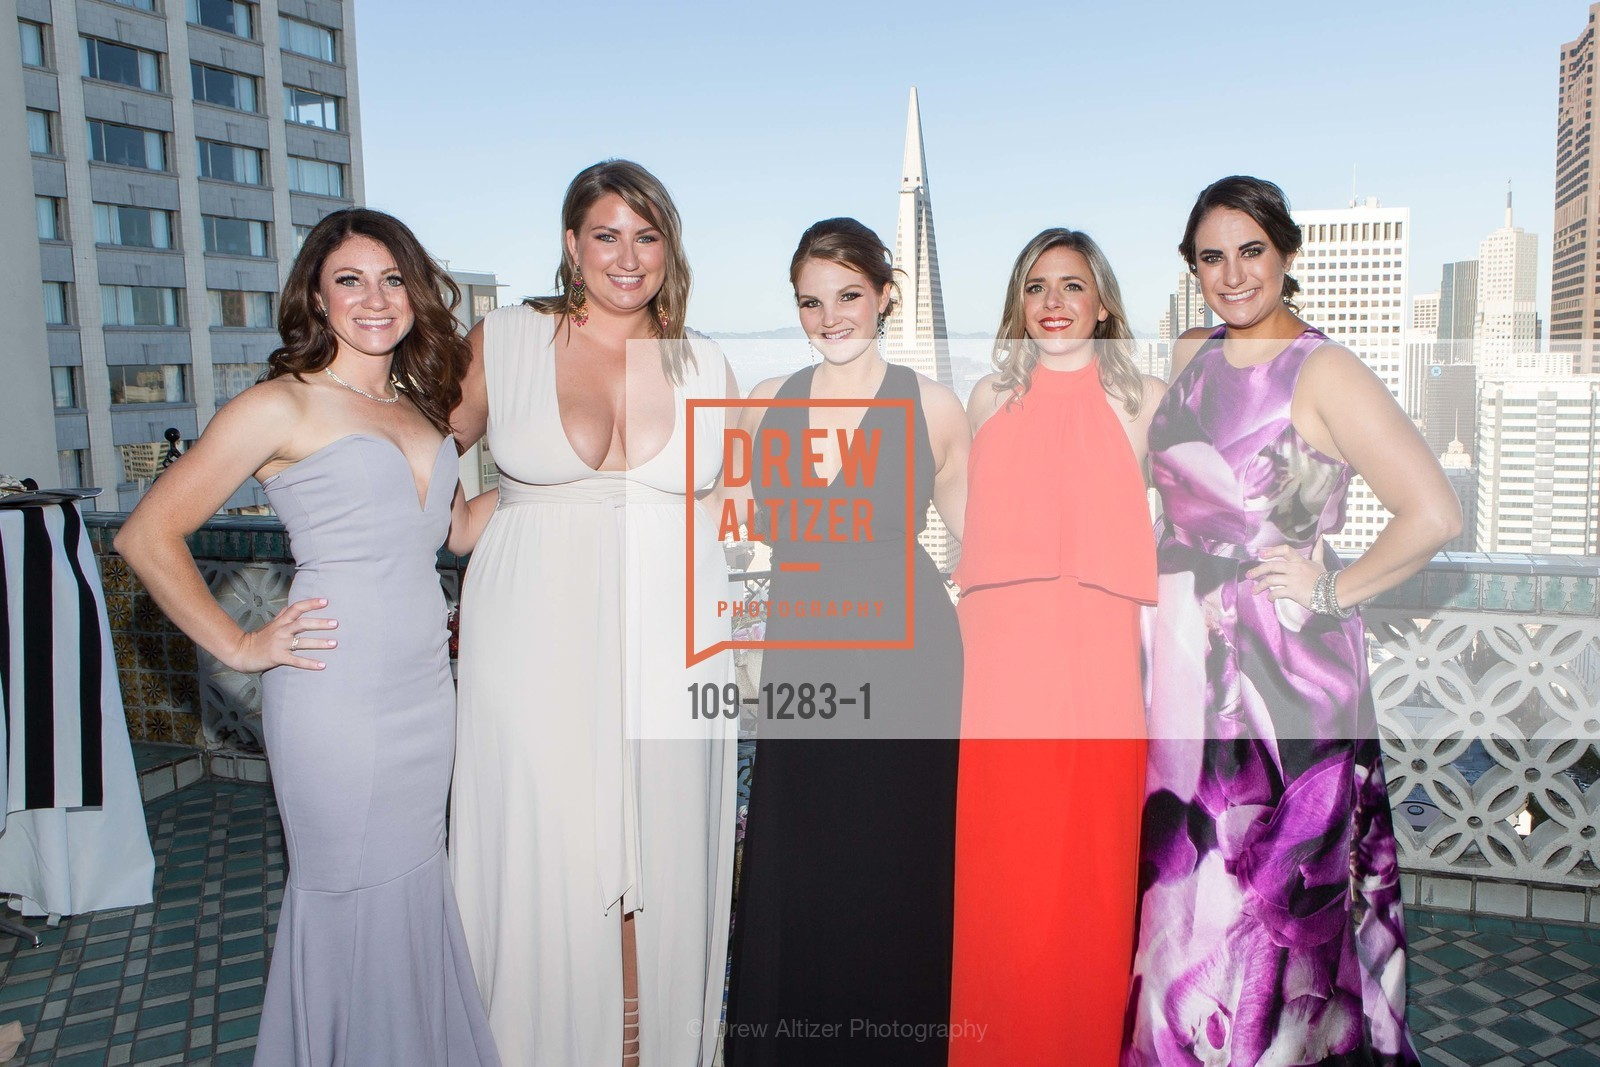 Kate Miller, Annie Benisch, Jamie Taylor, Melissa Stoller, Kathleen Roberts, Spinsters of San Francisco Annual Ball 2016, US, June 25th, 2016